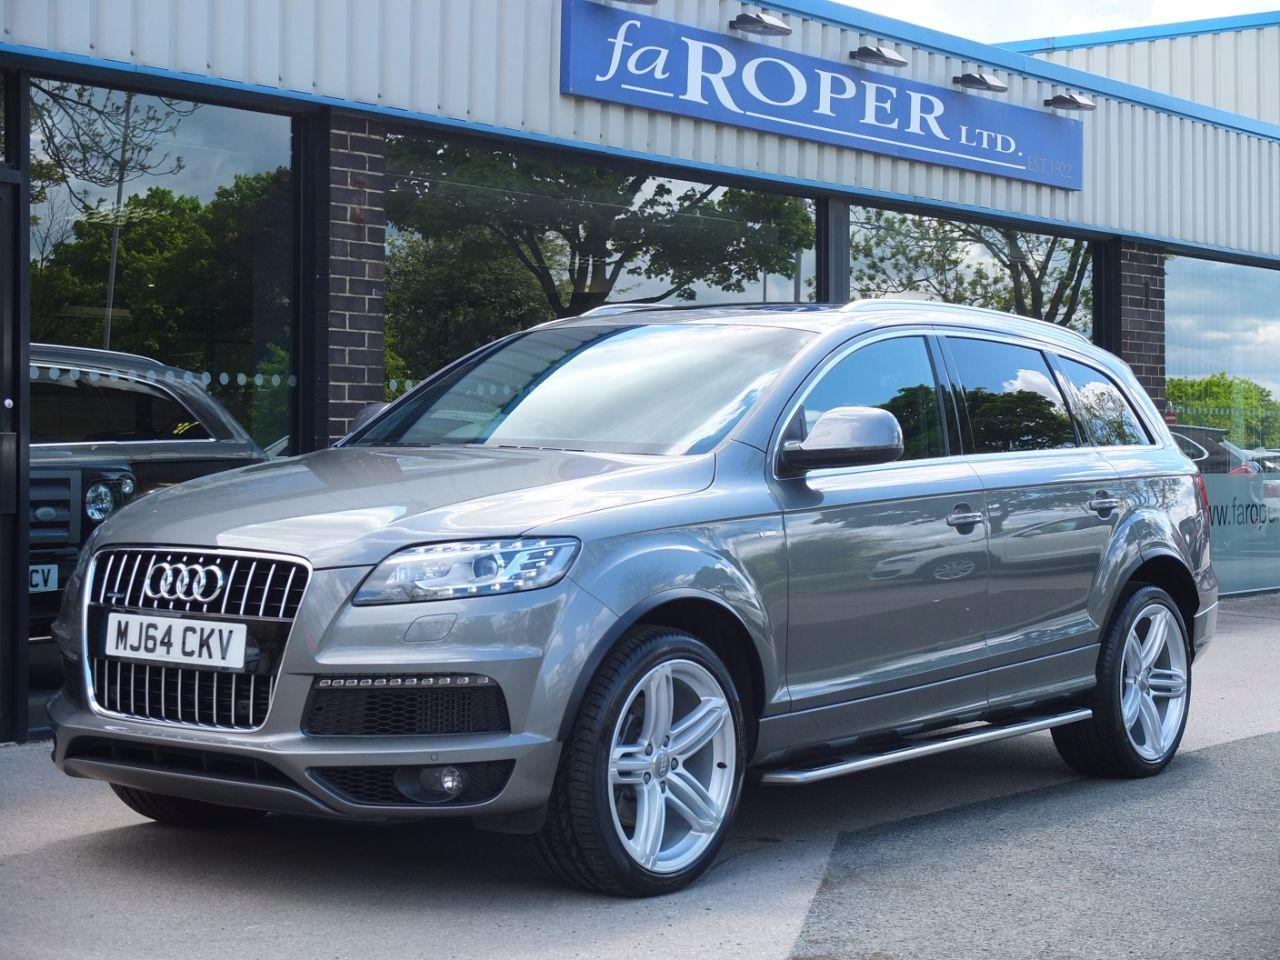 Audi Q7 3.0 TDI 245 quattro S Line Plus Auto (Panoramic Roof) Estate Diesel Graphite Grey MetallicAudi Q7 3.0 TDI 245 quattro S Line Plus Auto (Panoramic Roof) Estate Diesel Graphite Grey Metallic at fa Roper Ltd Bradford